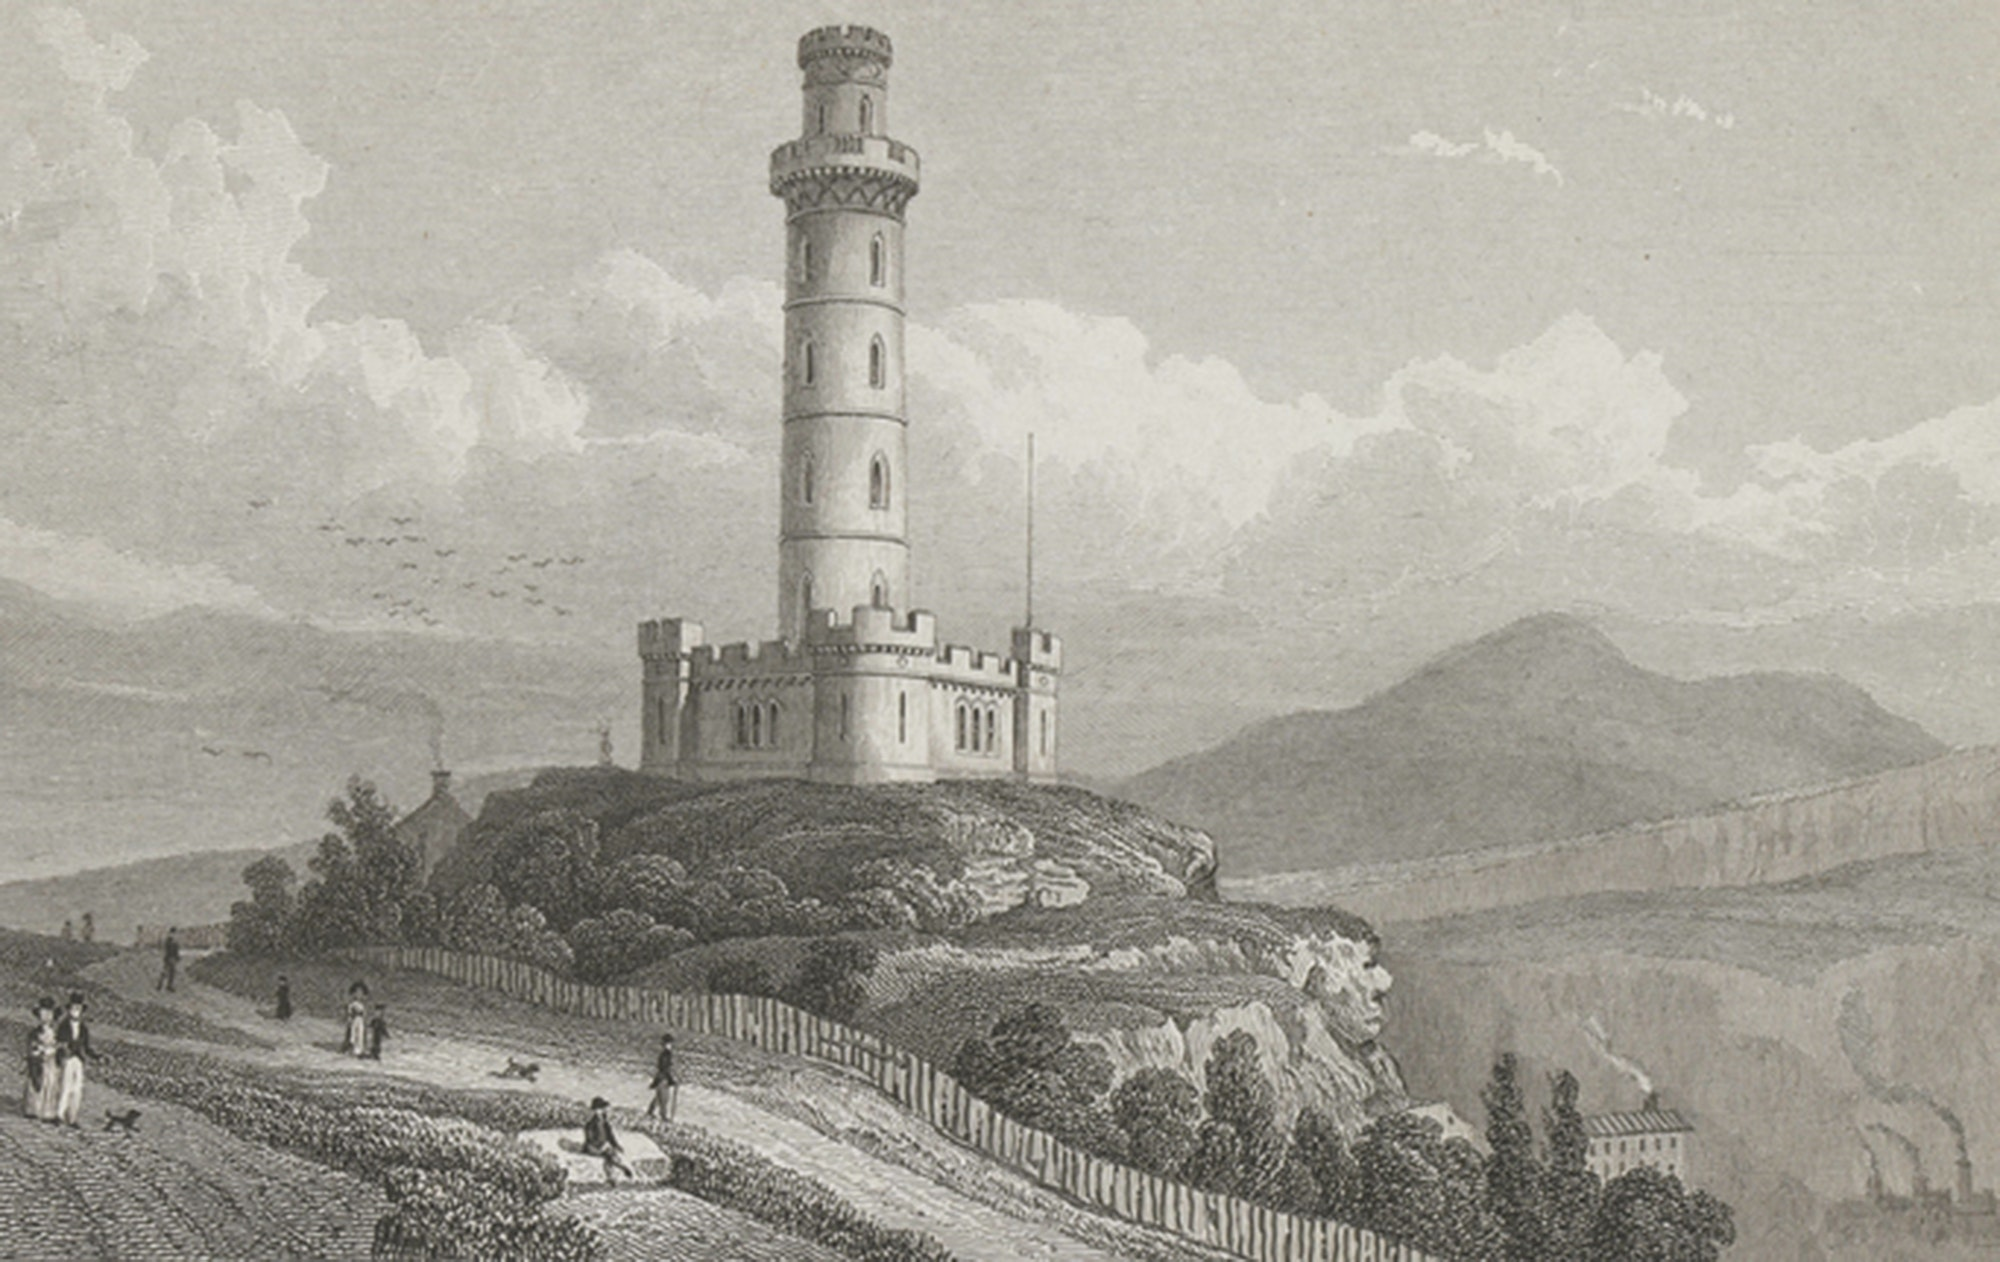 Nelson's Monument, Calton Hill, Thomas Shepherd, 1829, c/o City of Edinburgh Council – Museums and Galleries www.capitalcollections.org.uk